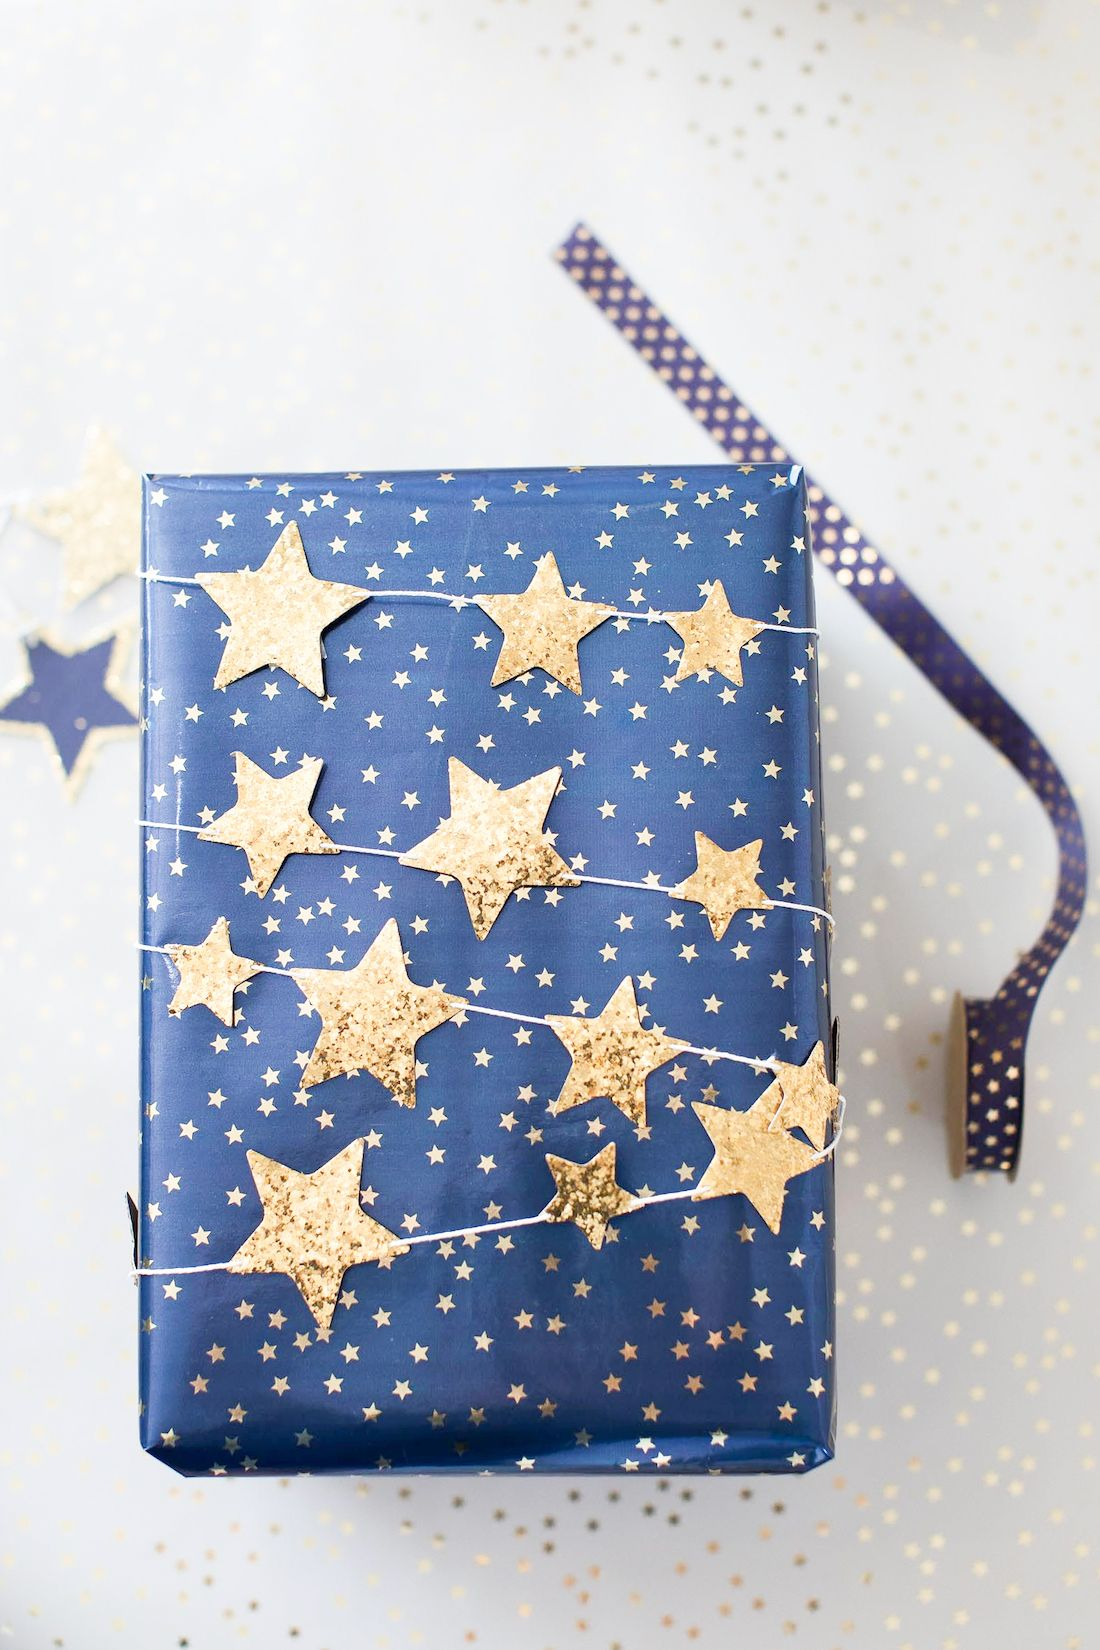 New Born Birthday 10 Sheets of Luxury Shapes Gift Wrap and Tags Christmas etc